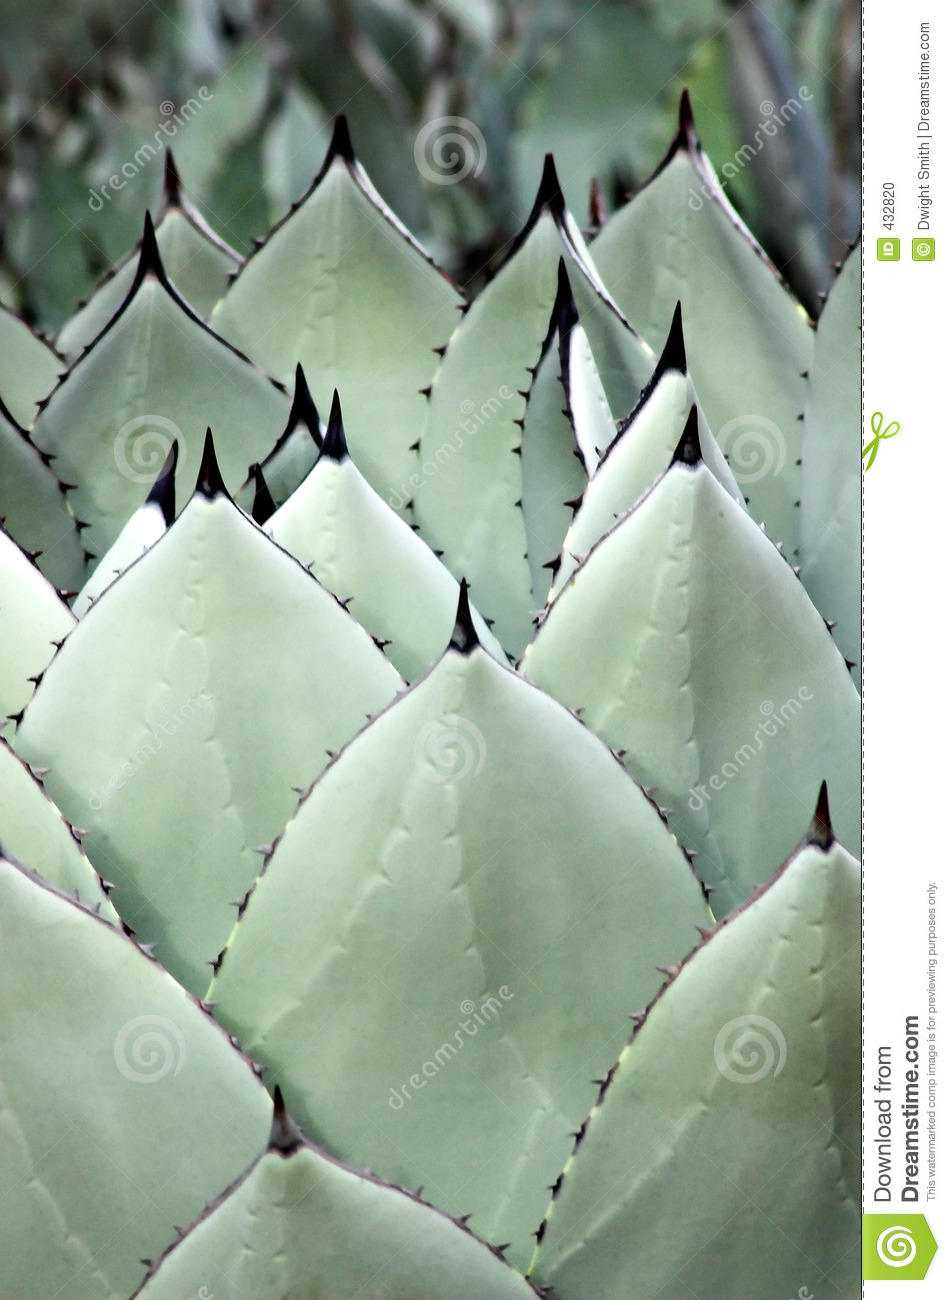 Agave Spears